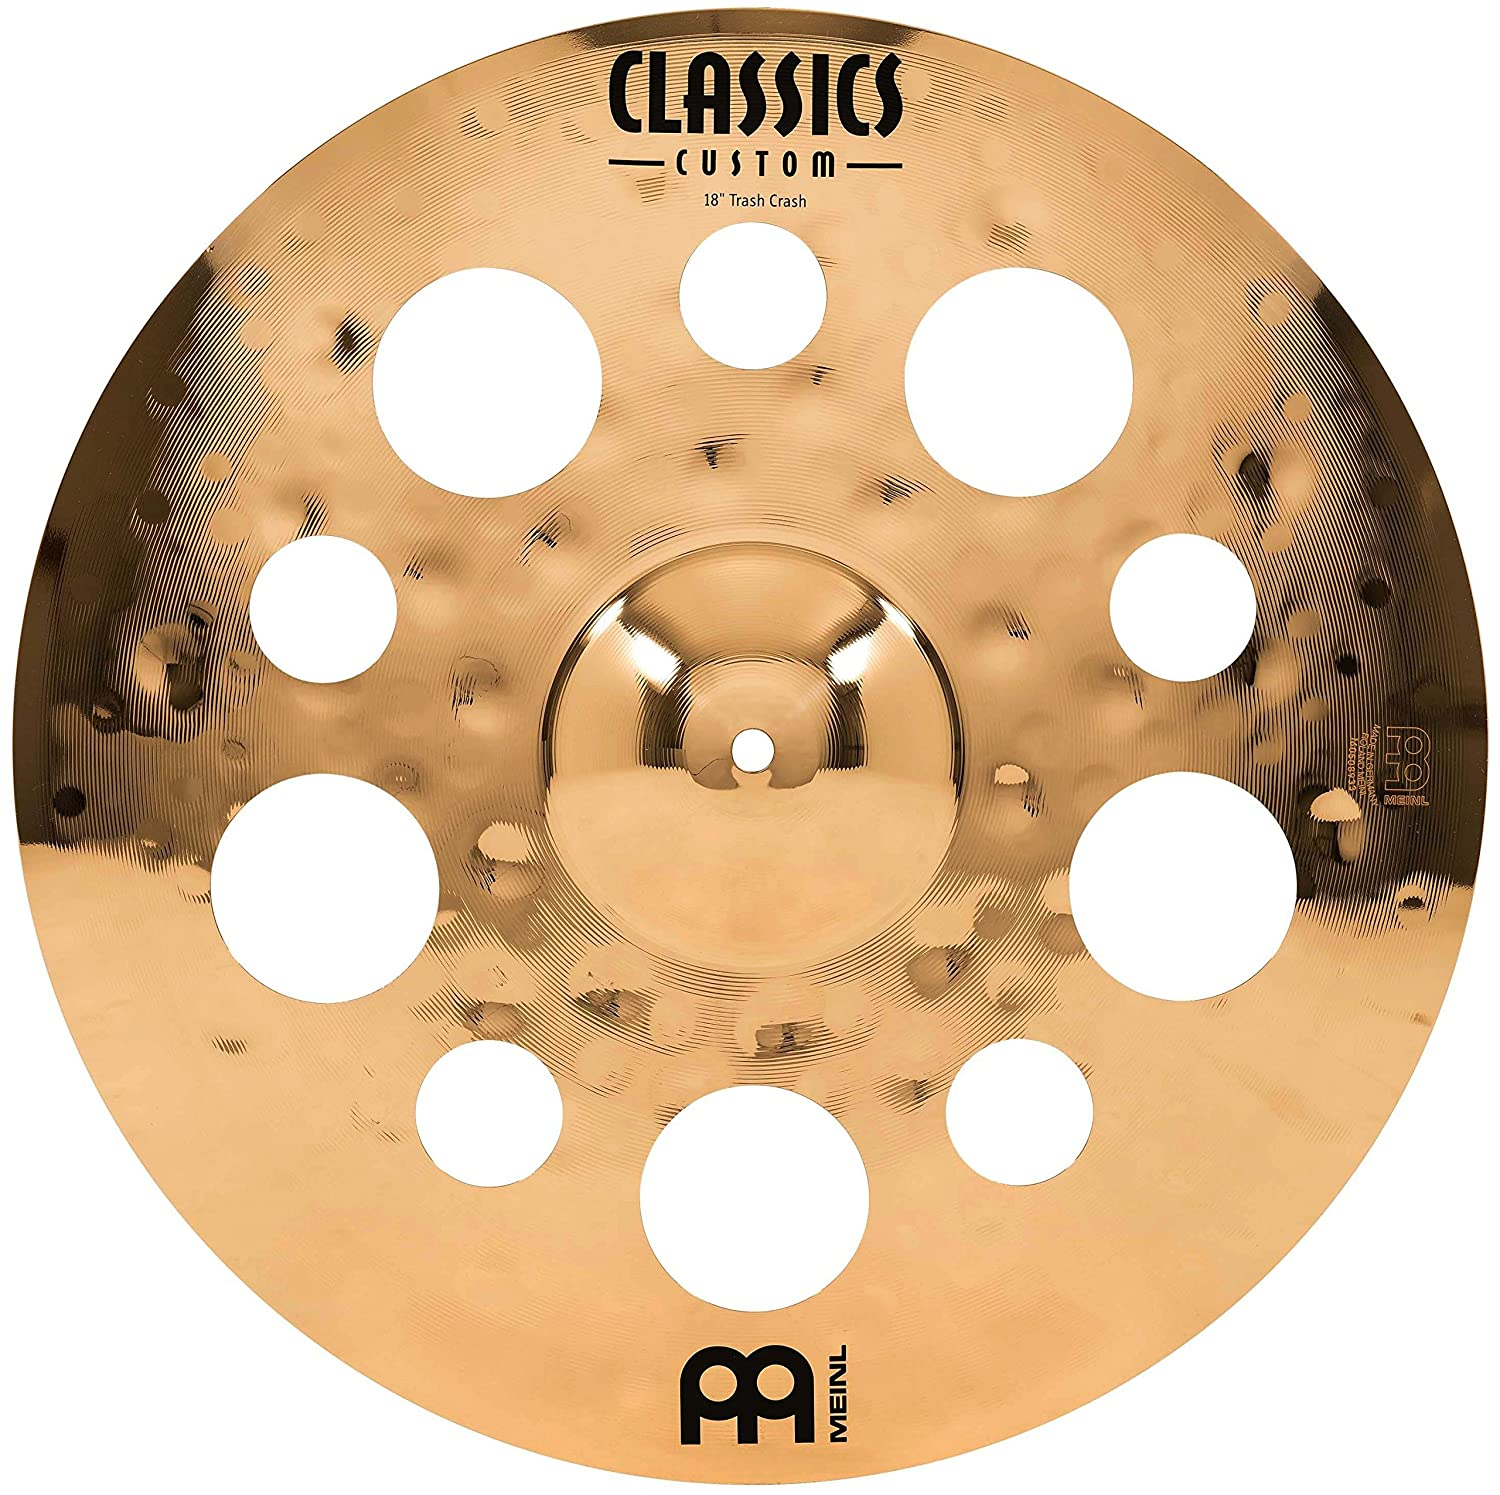 Meinl Cymbals CC18TRC-B Classics Custom Serie 45, 72 cm (18 Zoll) Trash Crash Brilliant Finish Becken